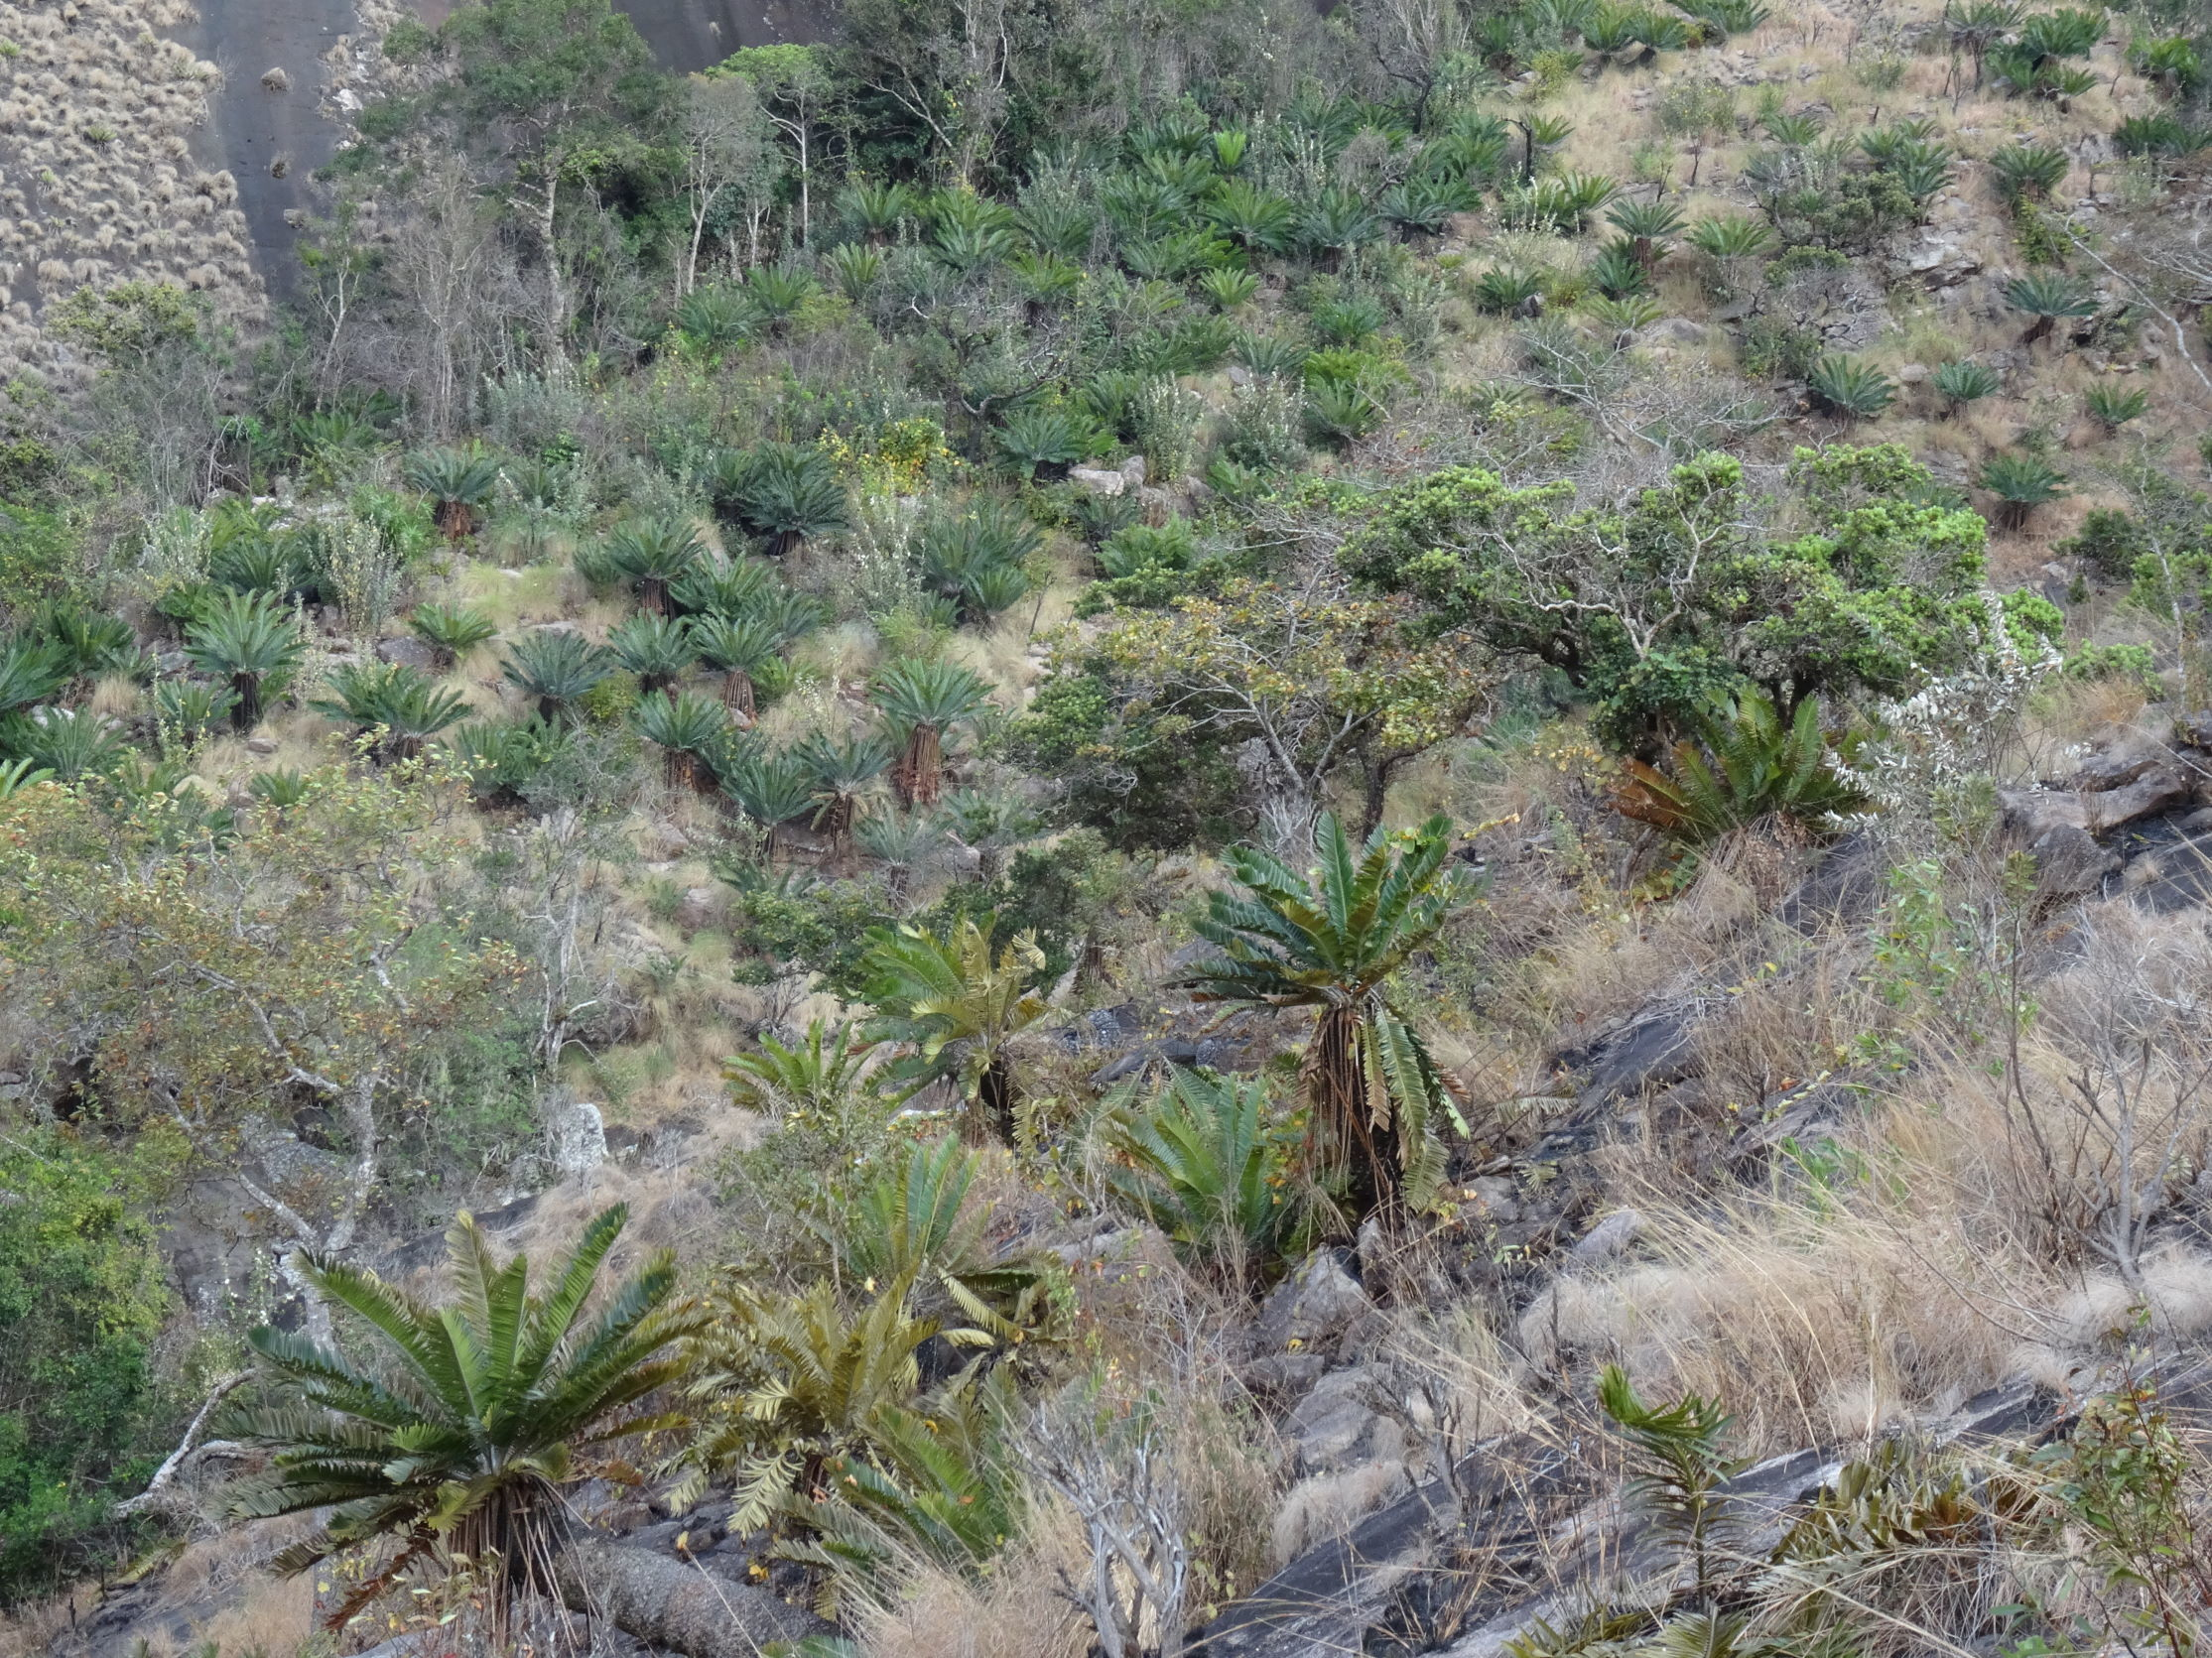 Image of Turner's Cycad